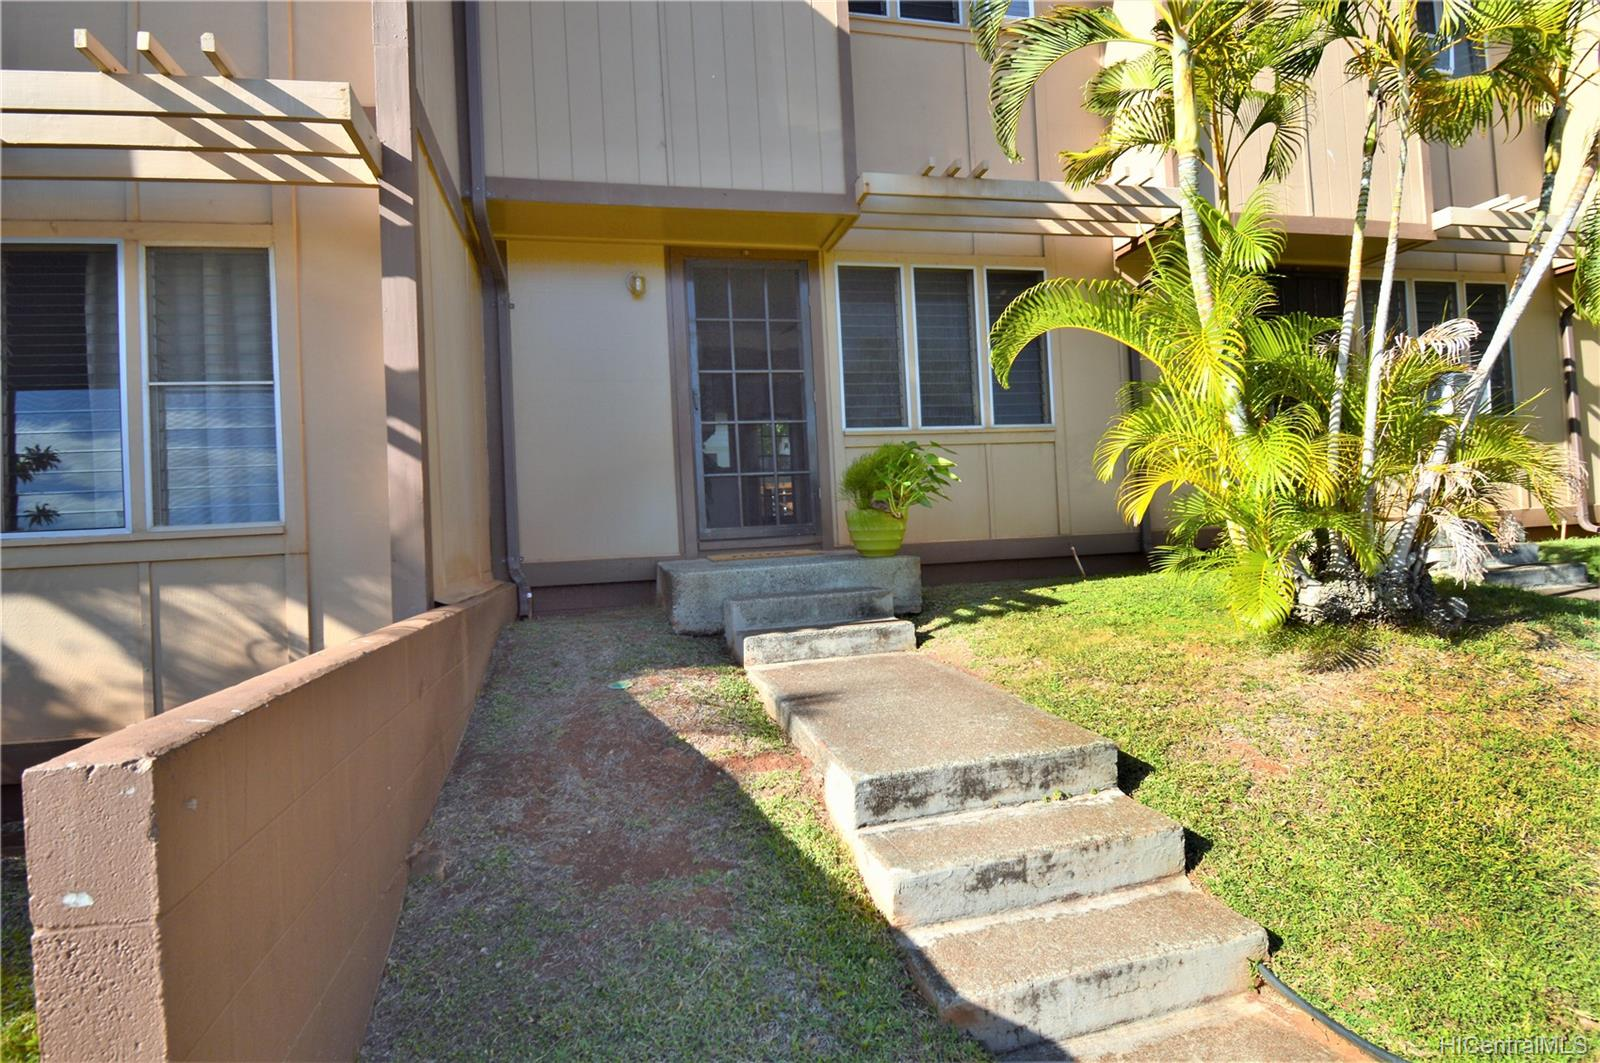 98-1397 Hinu Place townhouse # D, Pearl City, Hawaii - photo 23 of 25